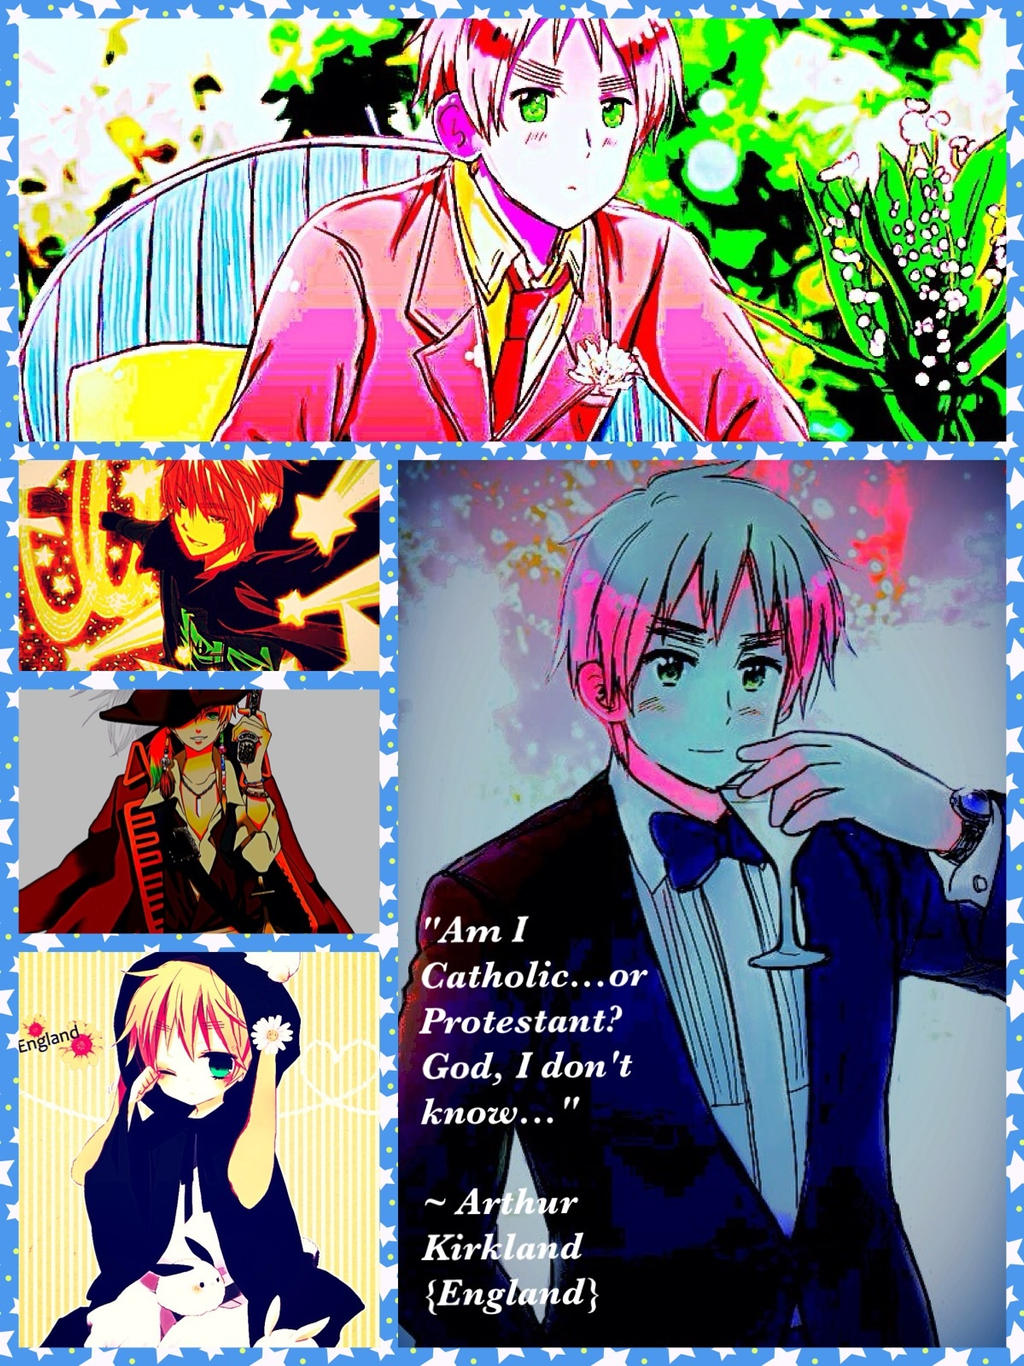 2p hetalia images 2p england hd wallpaper and background photos -  Hetalia England Iphone Ipad Ipod Wallpaper By Ayakaito